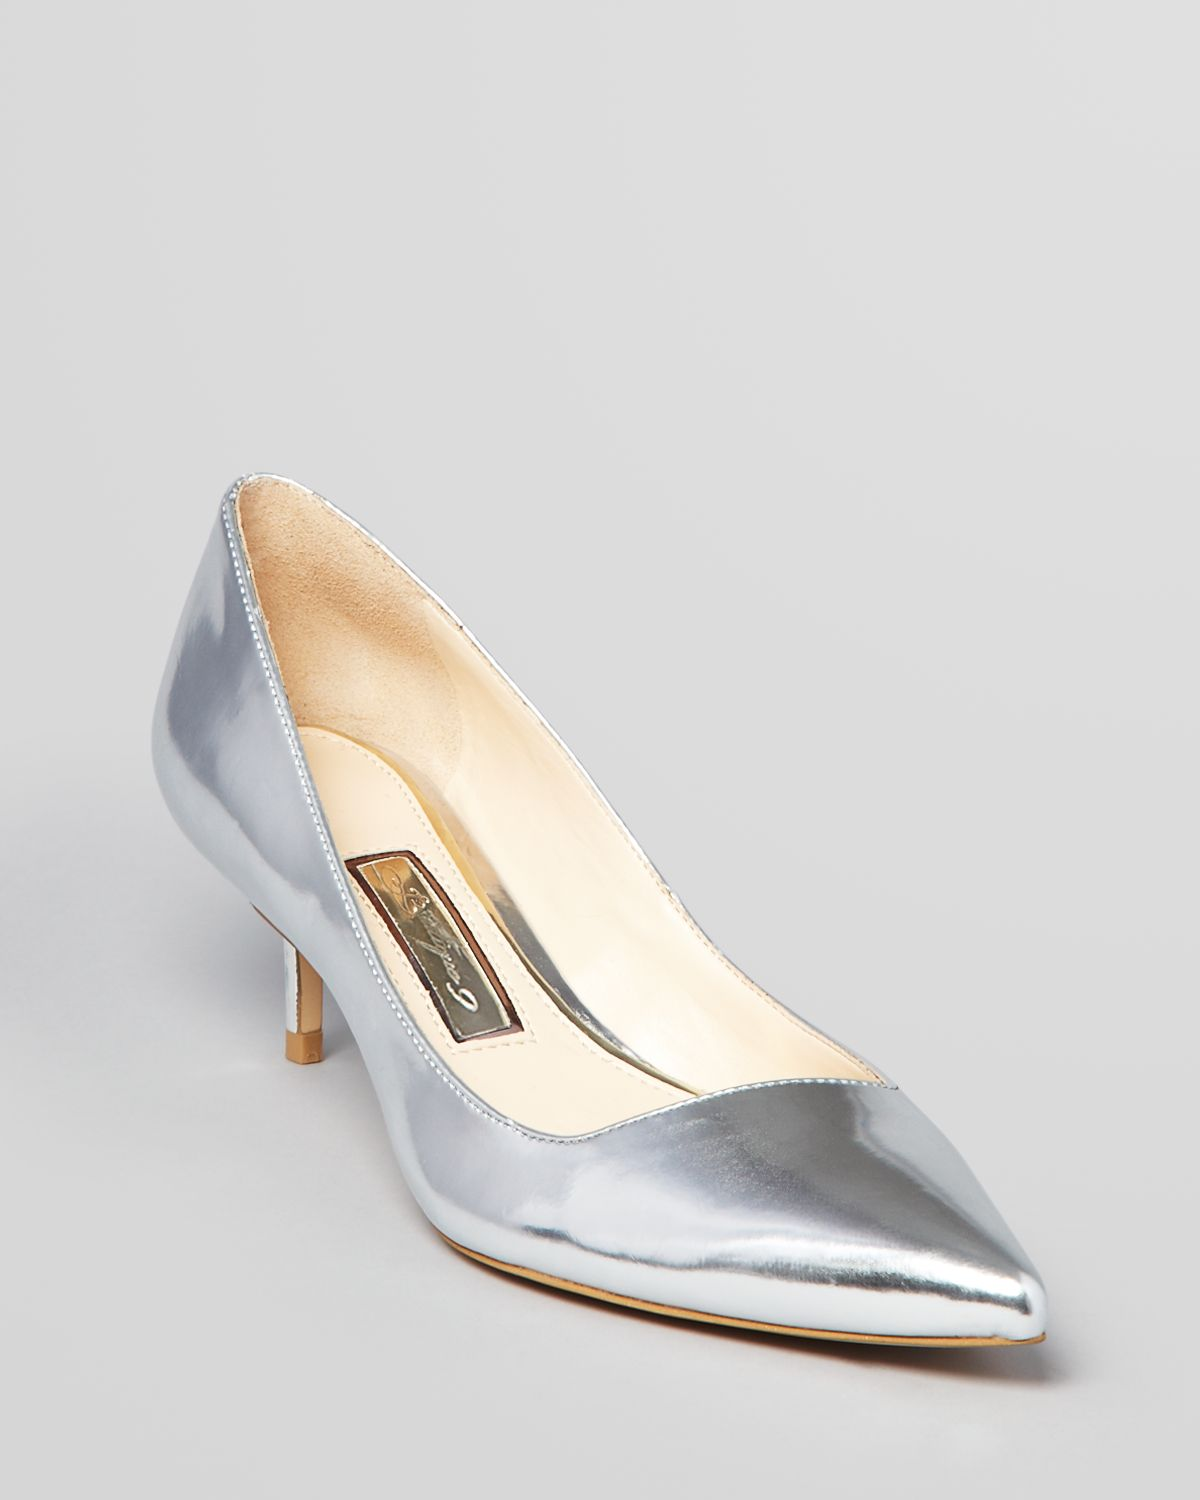 Silver Shoes With Kitten Heel